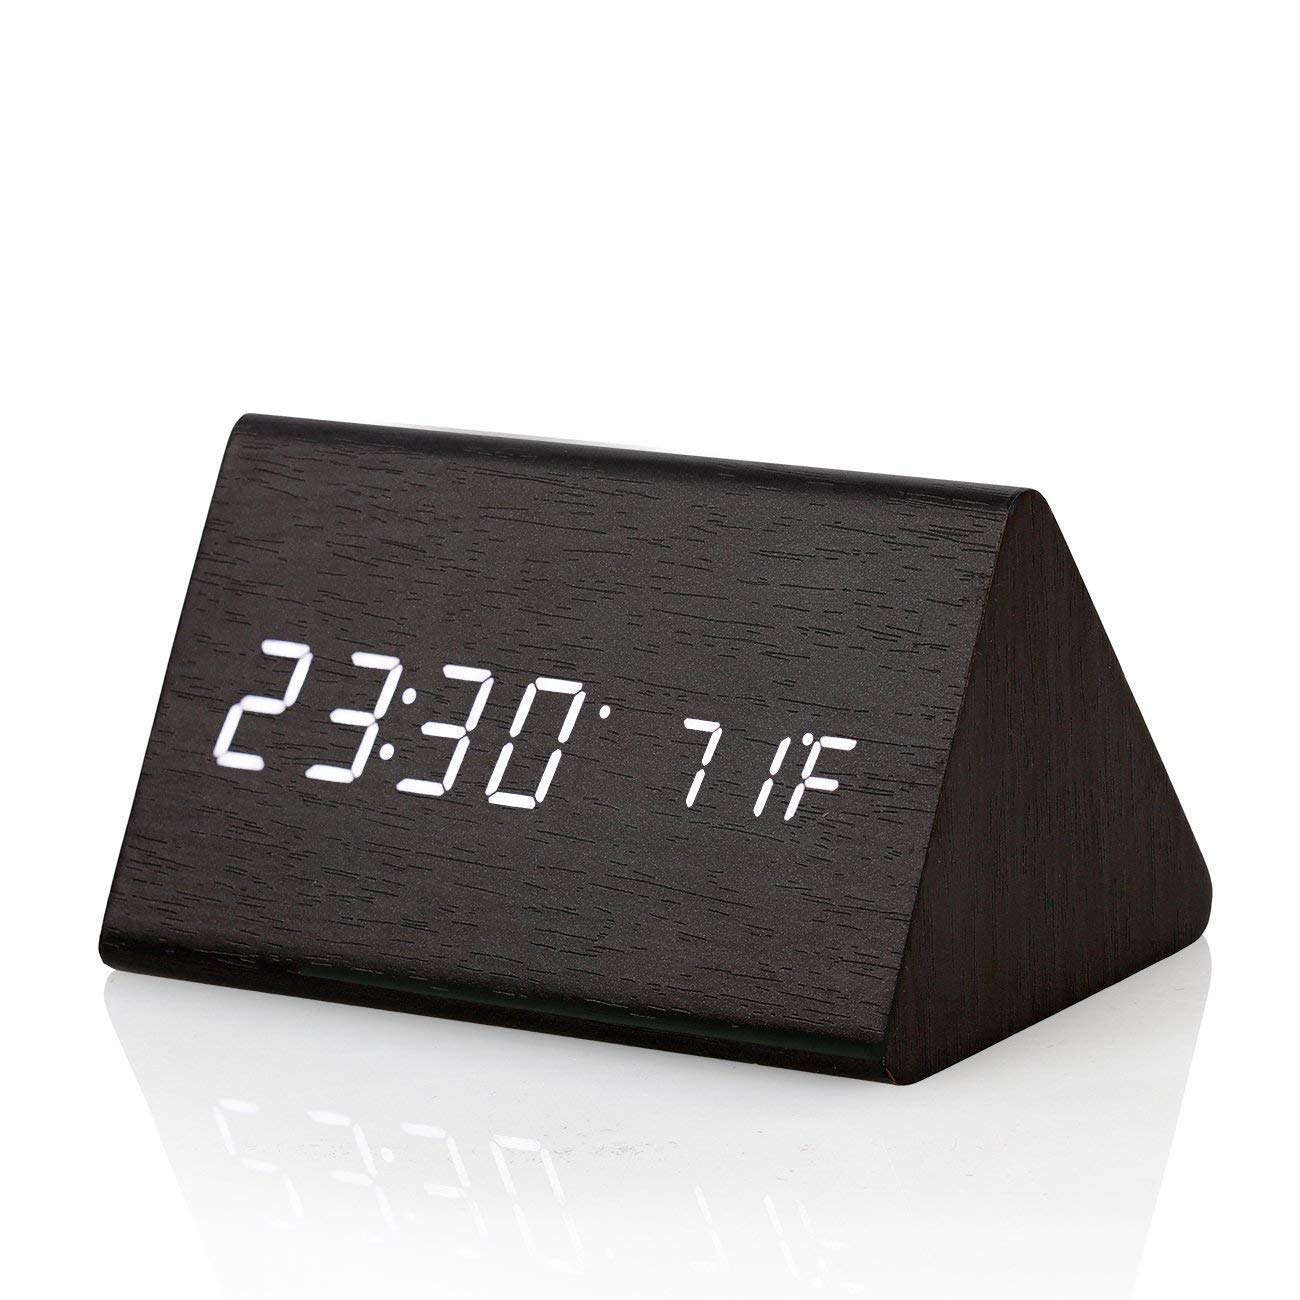 CORTEGE Digital Alarm Clock Wooden LED Light Clock with Time and Temperature Display Triangle for Home Bedroom Office Desk Travel Kids Heavy Sleepers by CORTEGE